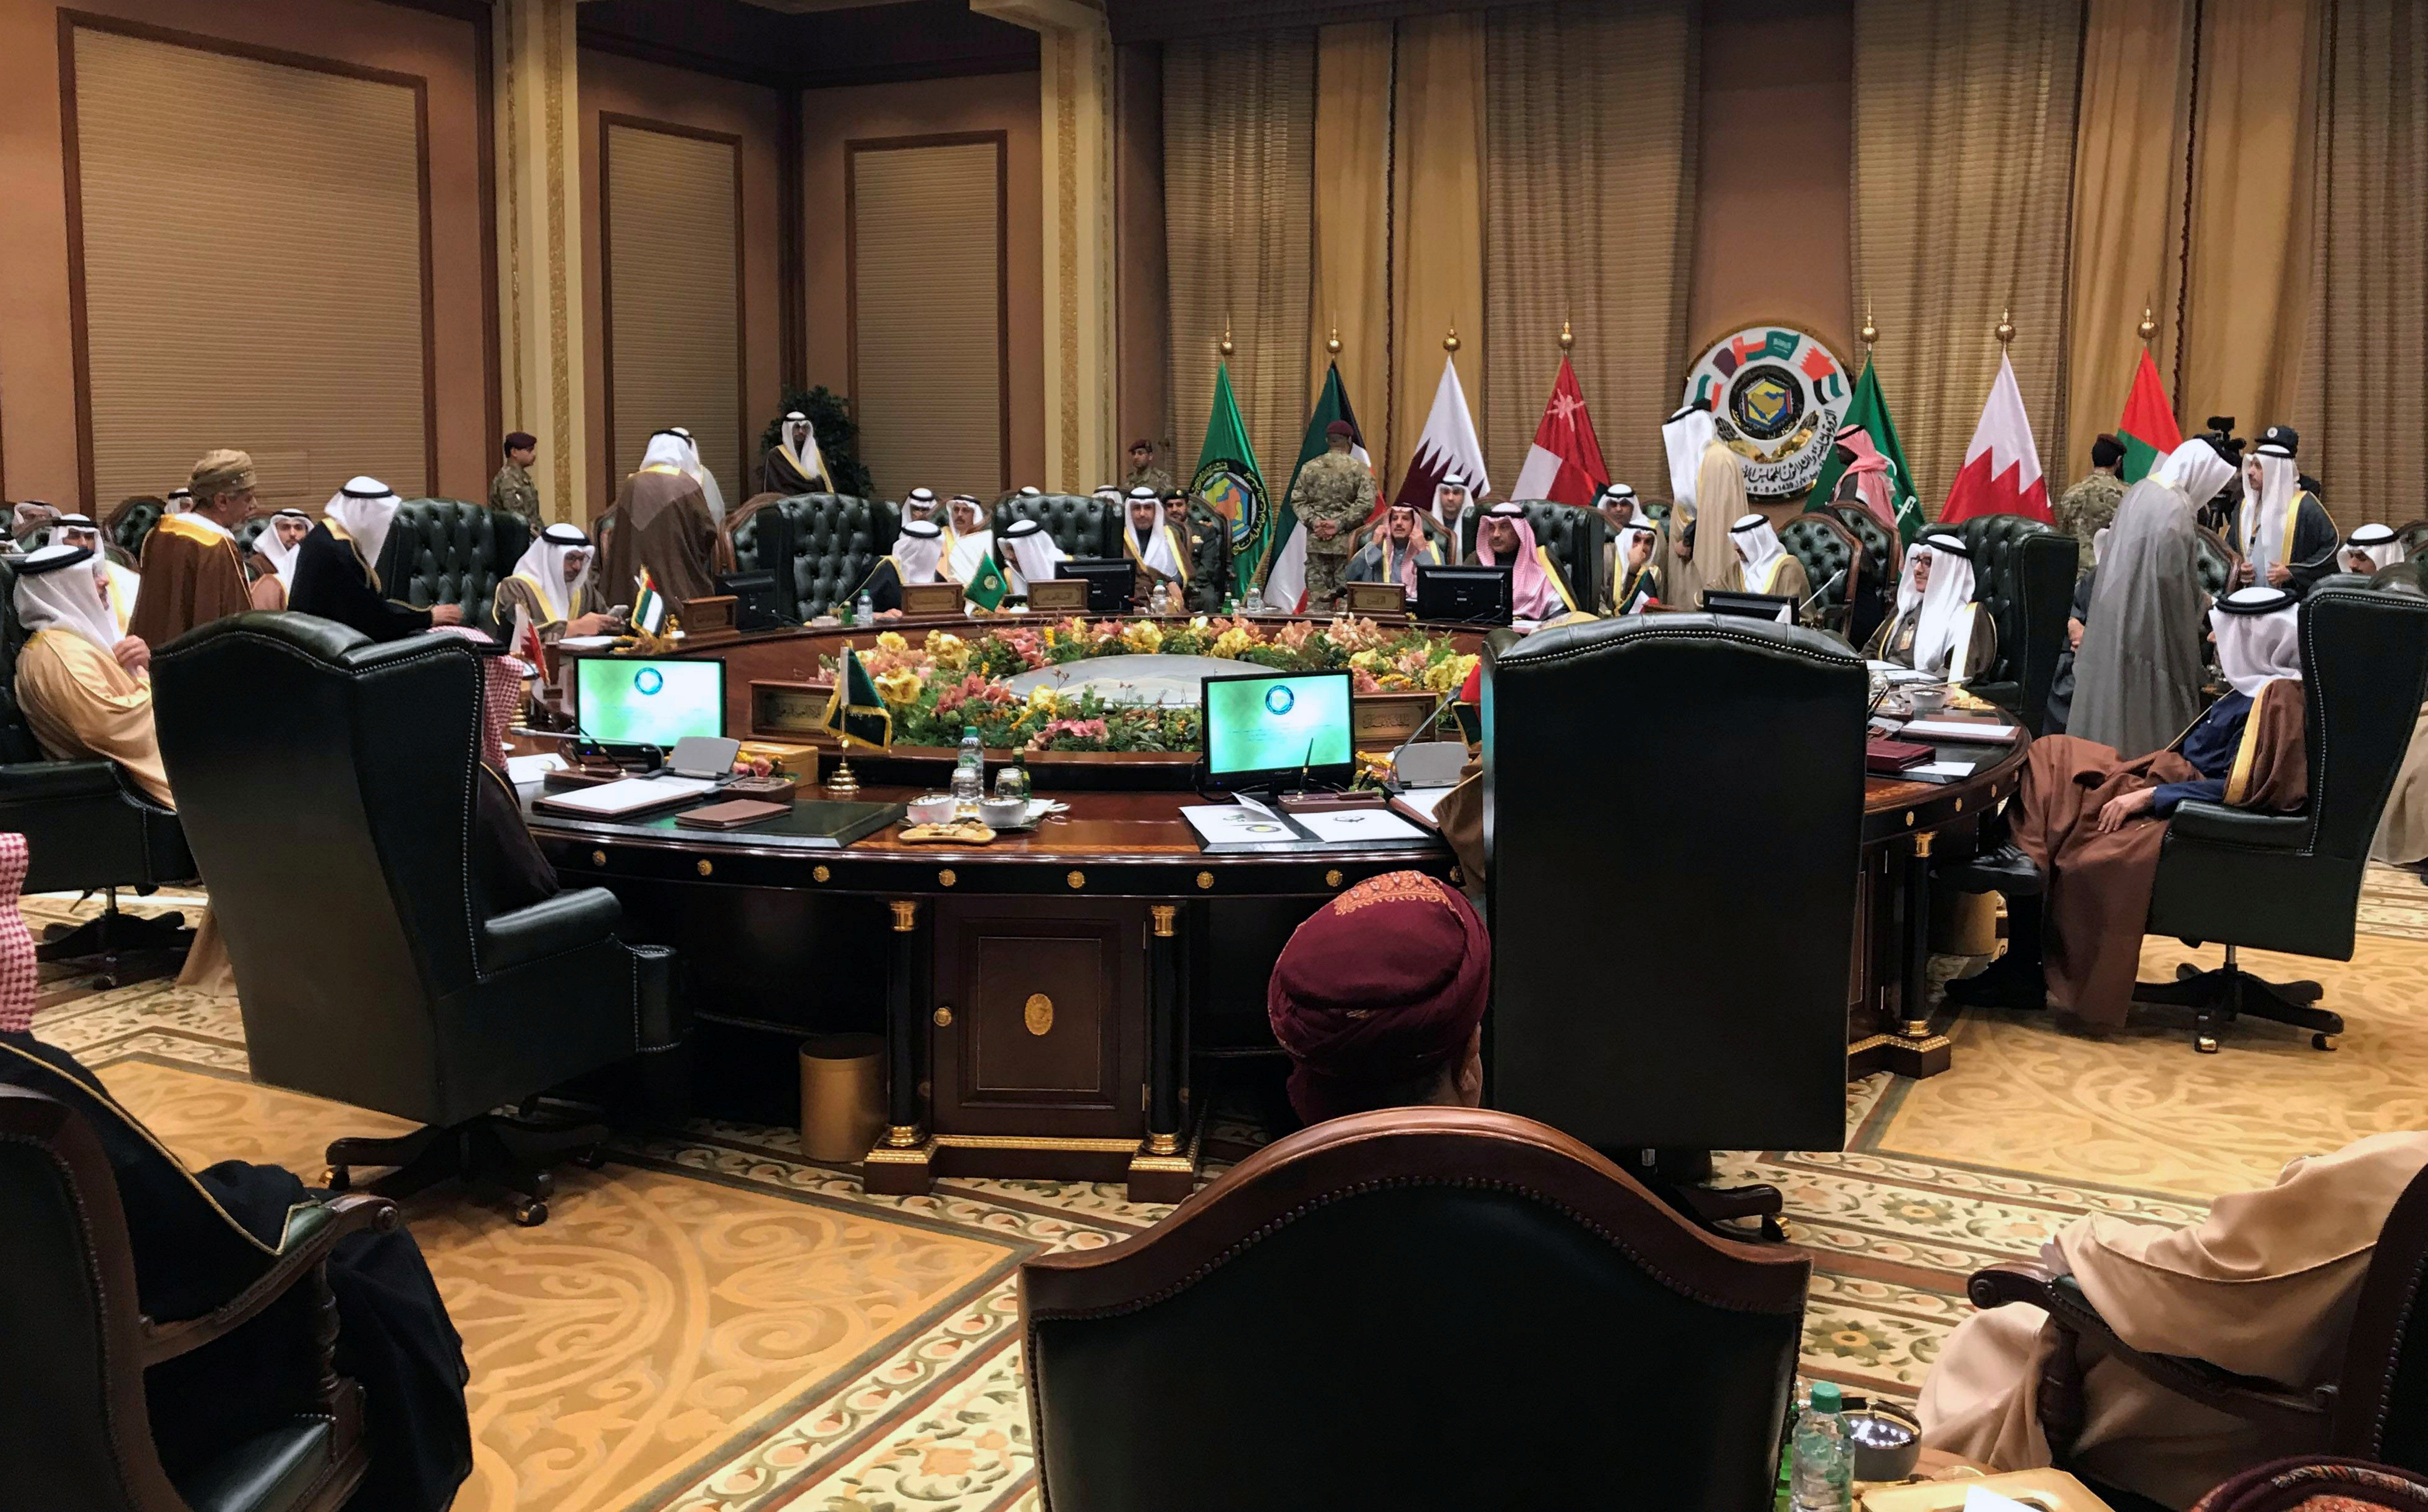 Foreign Ministers of the Gulf Cooperation Council (GCC) attend a meeting in Bayan Palace, in Kuwait City, Kuwait, December 4, 2017.